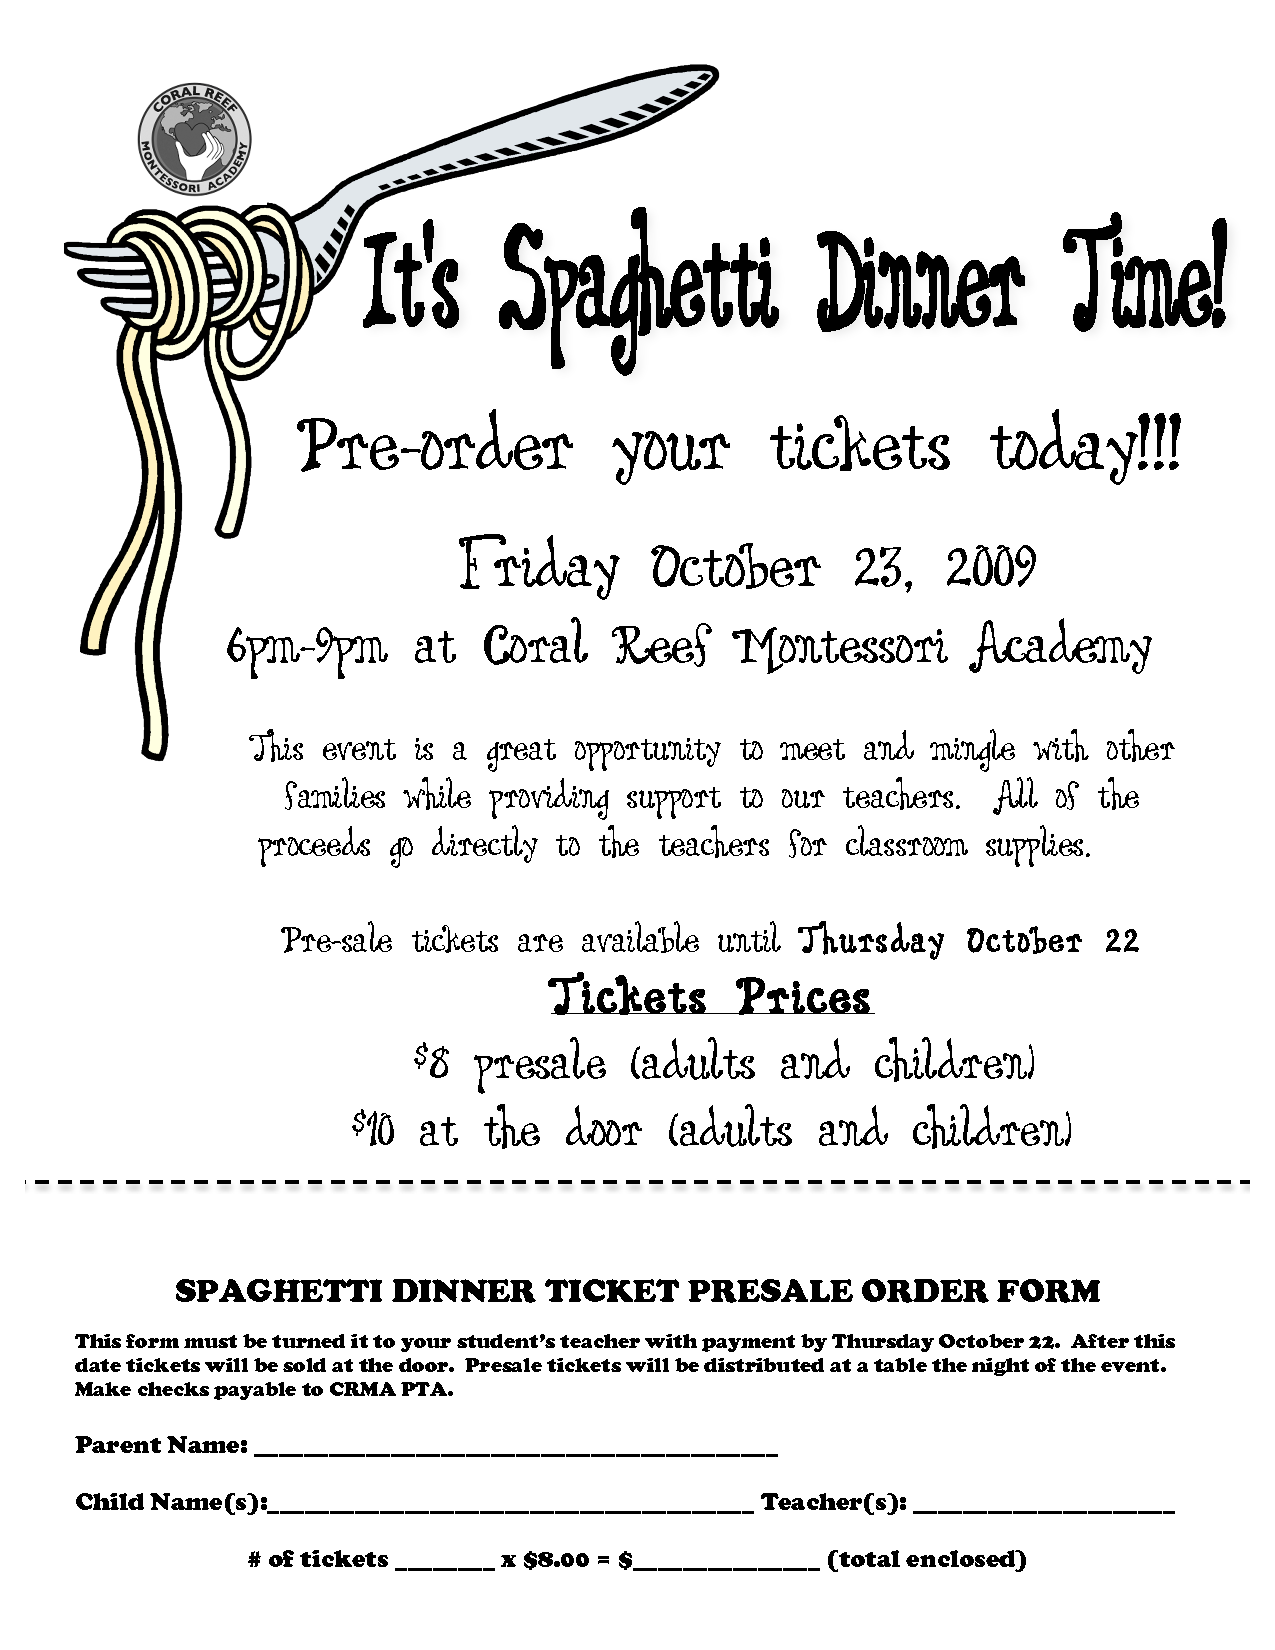 spaghetti dinner ticket template spaghetti dinner ticket presale